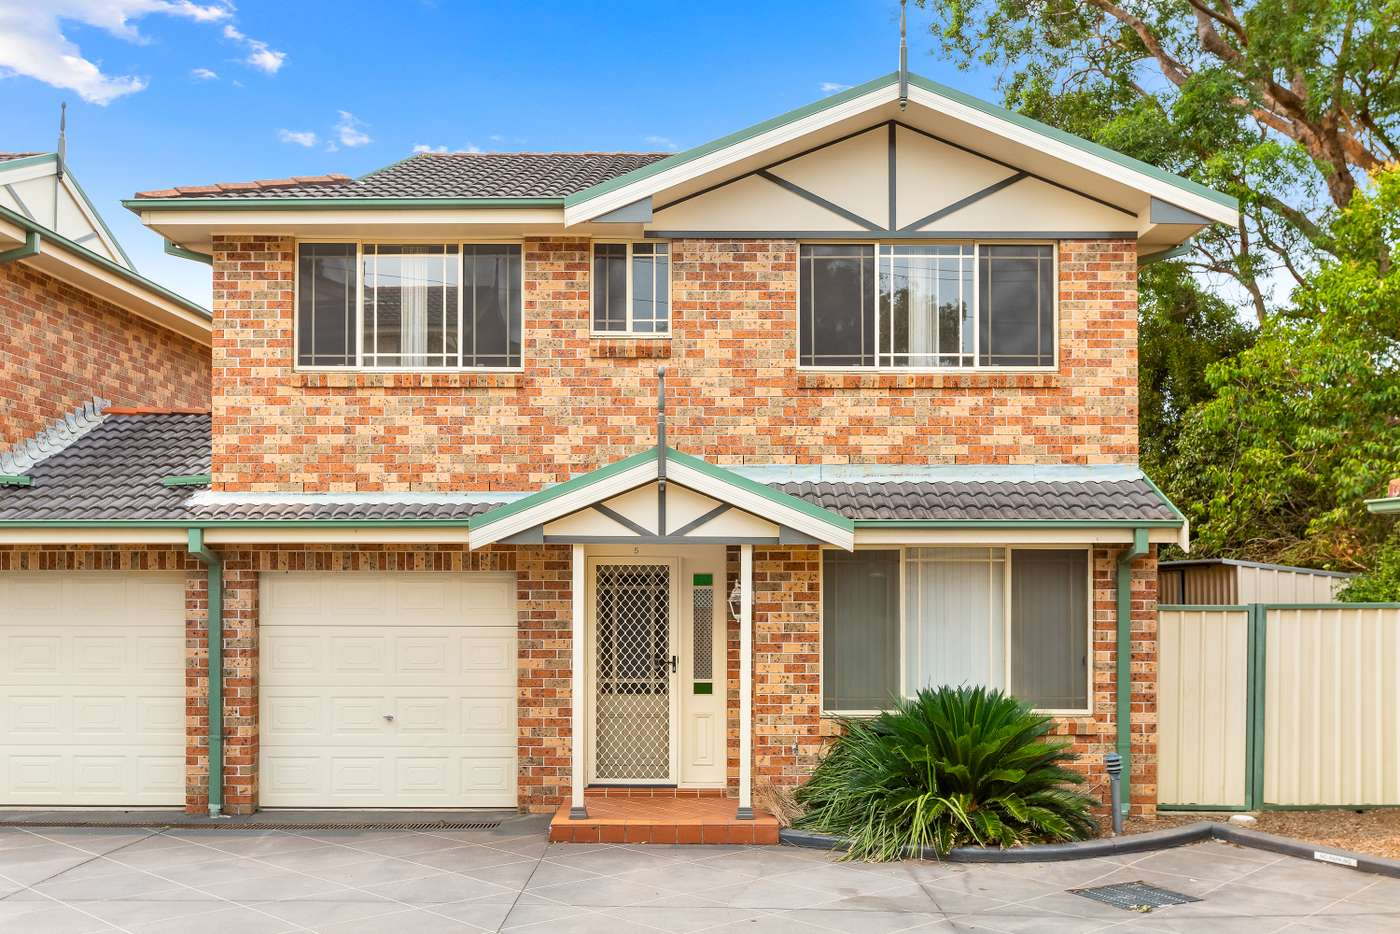 Main view of Homely house listing, 5/115 Caringbah Road, Caringbah NSW 2229